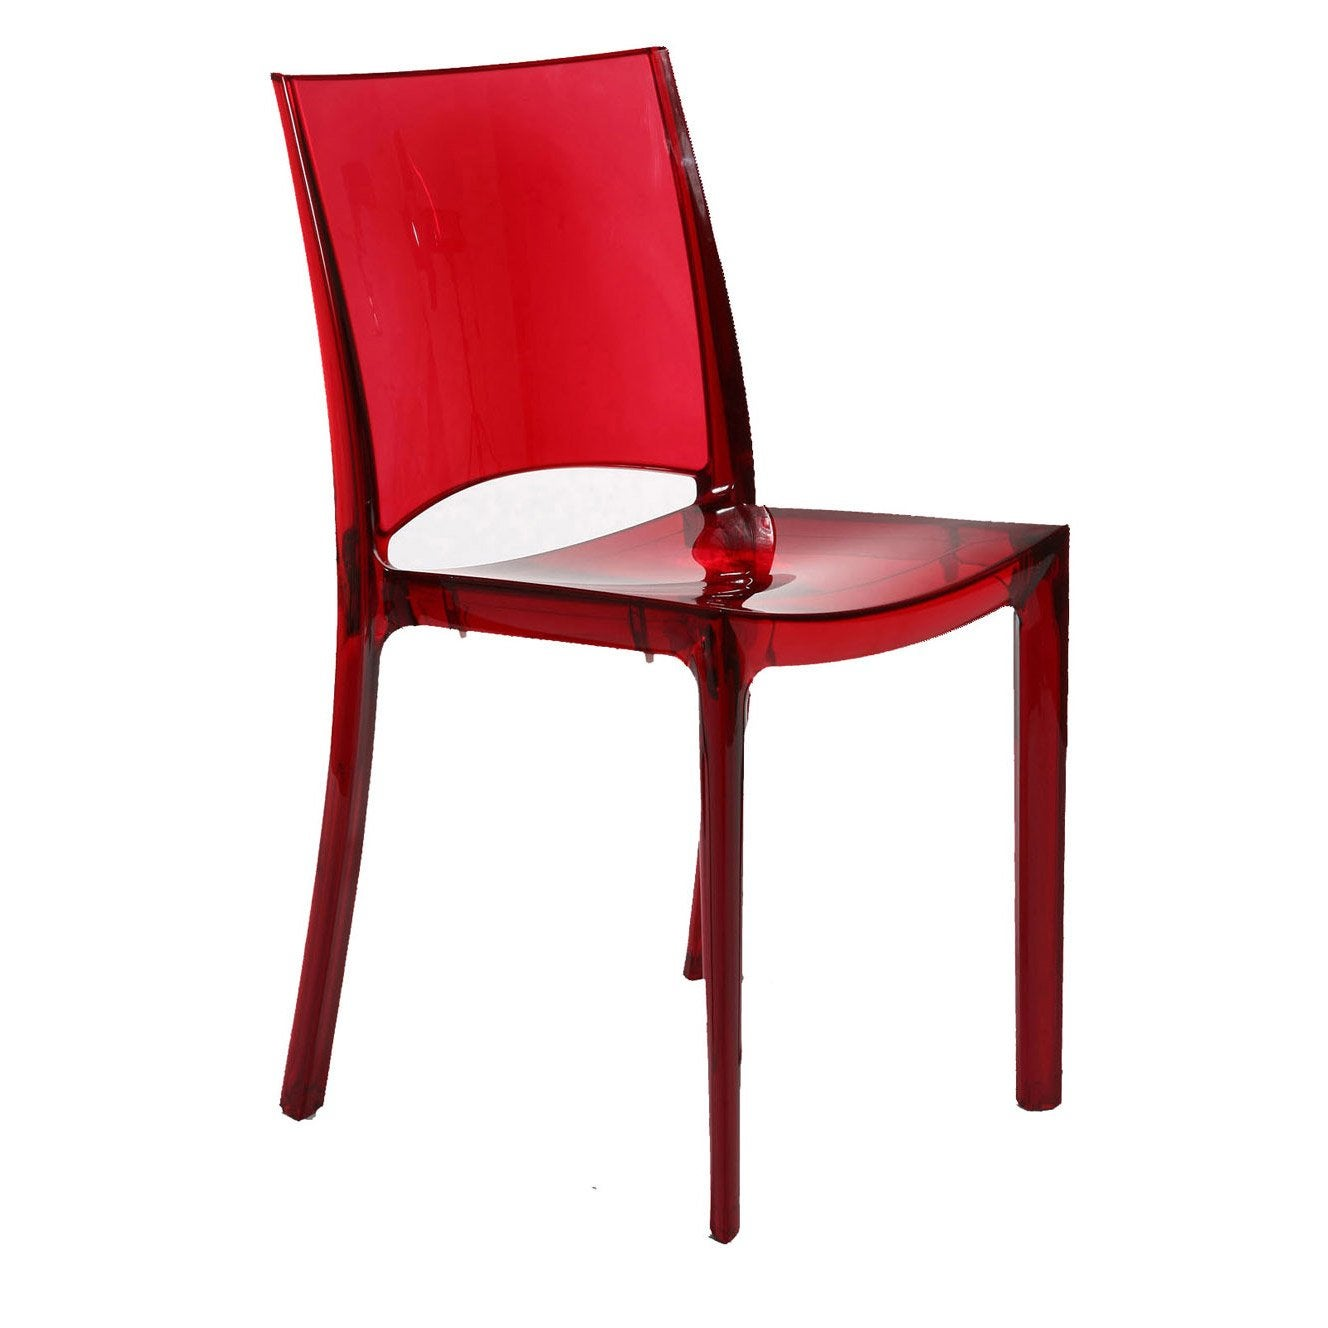 Chaise de jardin en polycarbonate paris lux rouge leroy for Chaise en polycarbonate